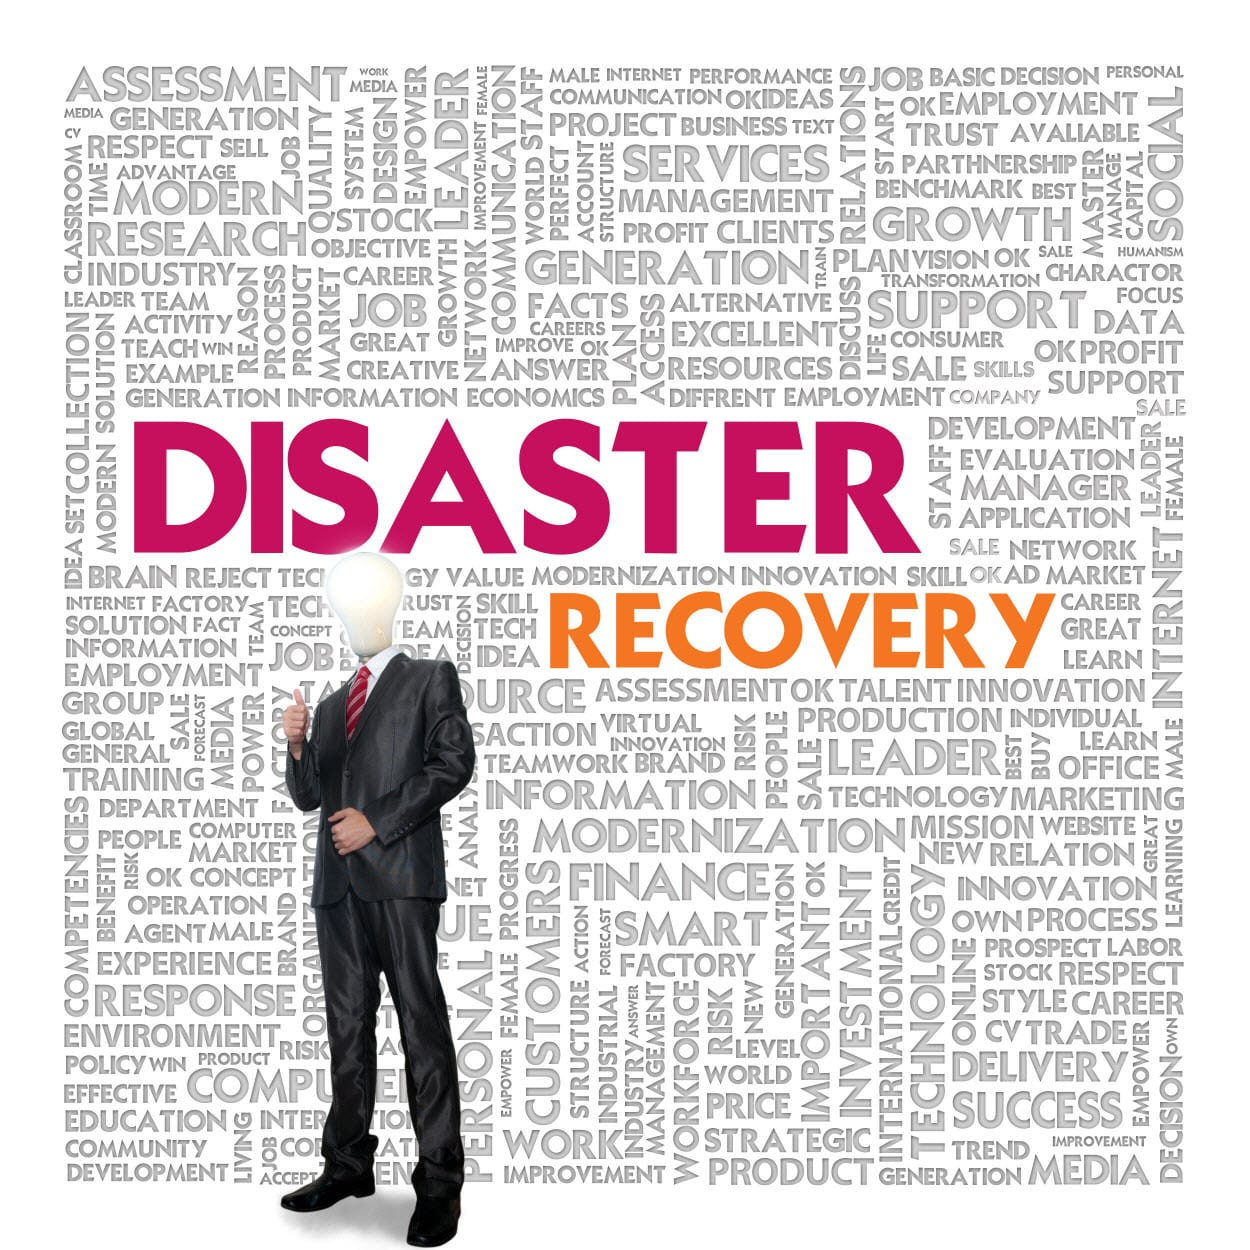 Disaster Recovery Creating A Disaster Recovery Plan Emergency Plan